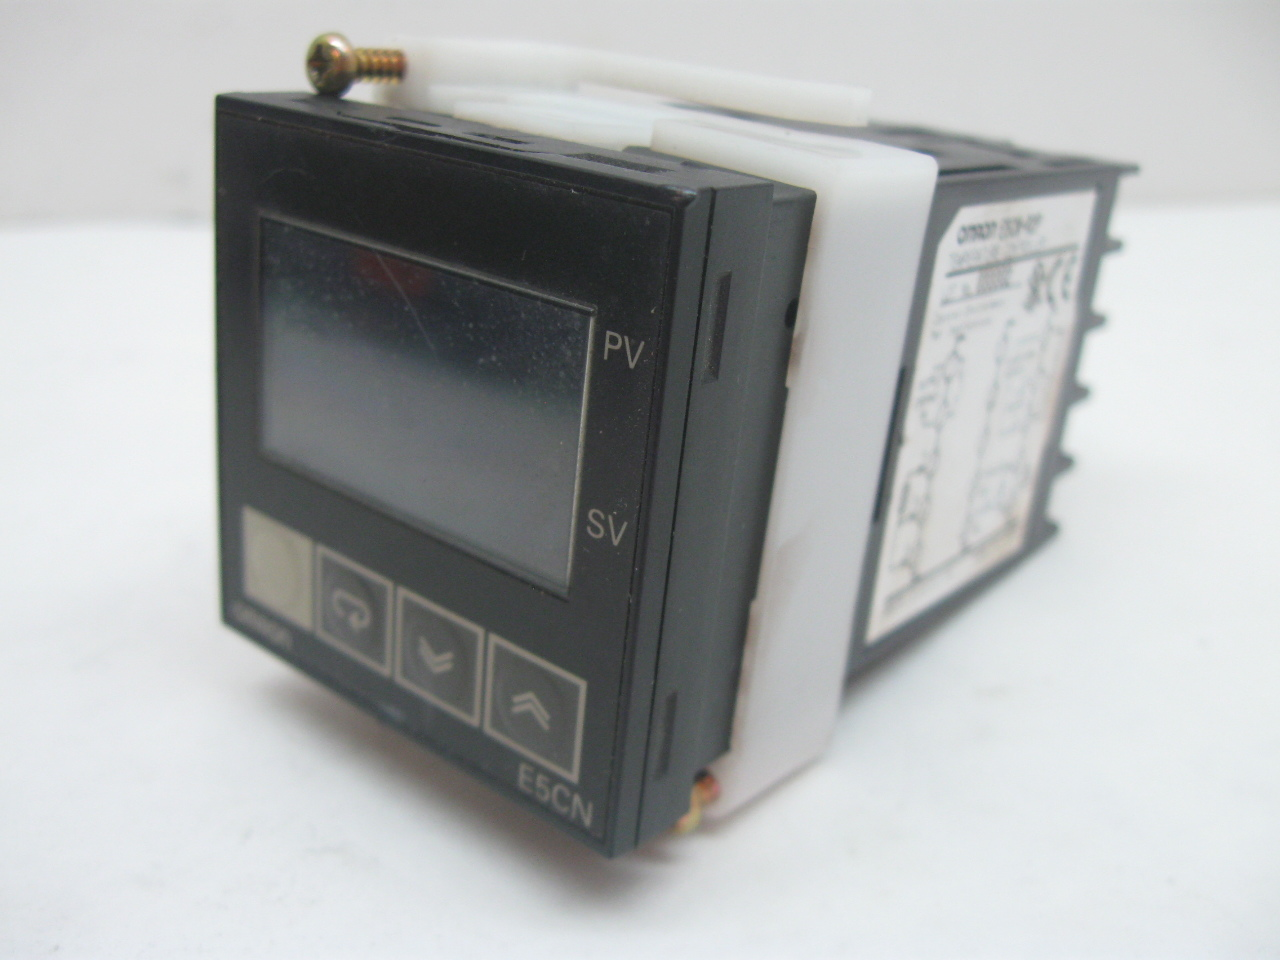 omron temperature controller wiring diagram detailed digestive system e5cn r2p ebay